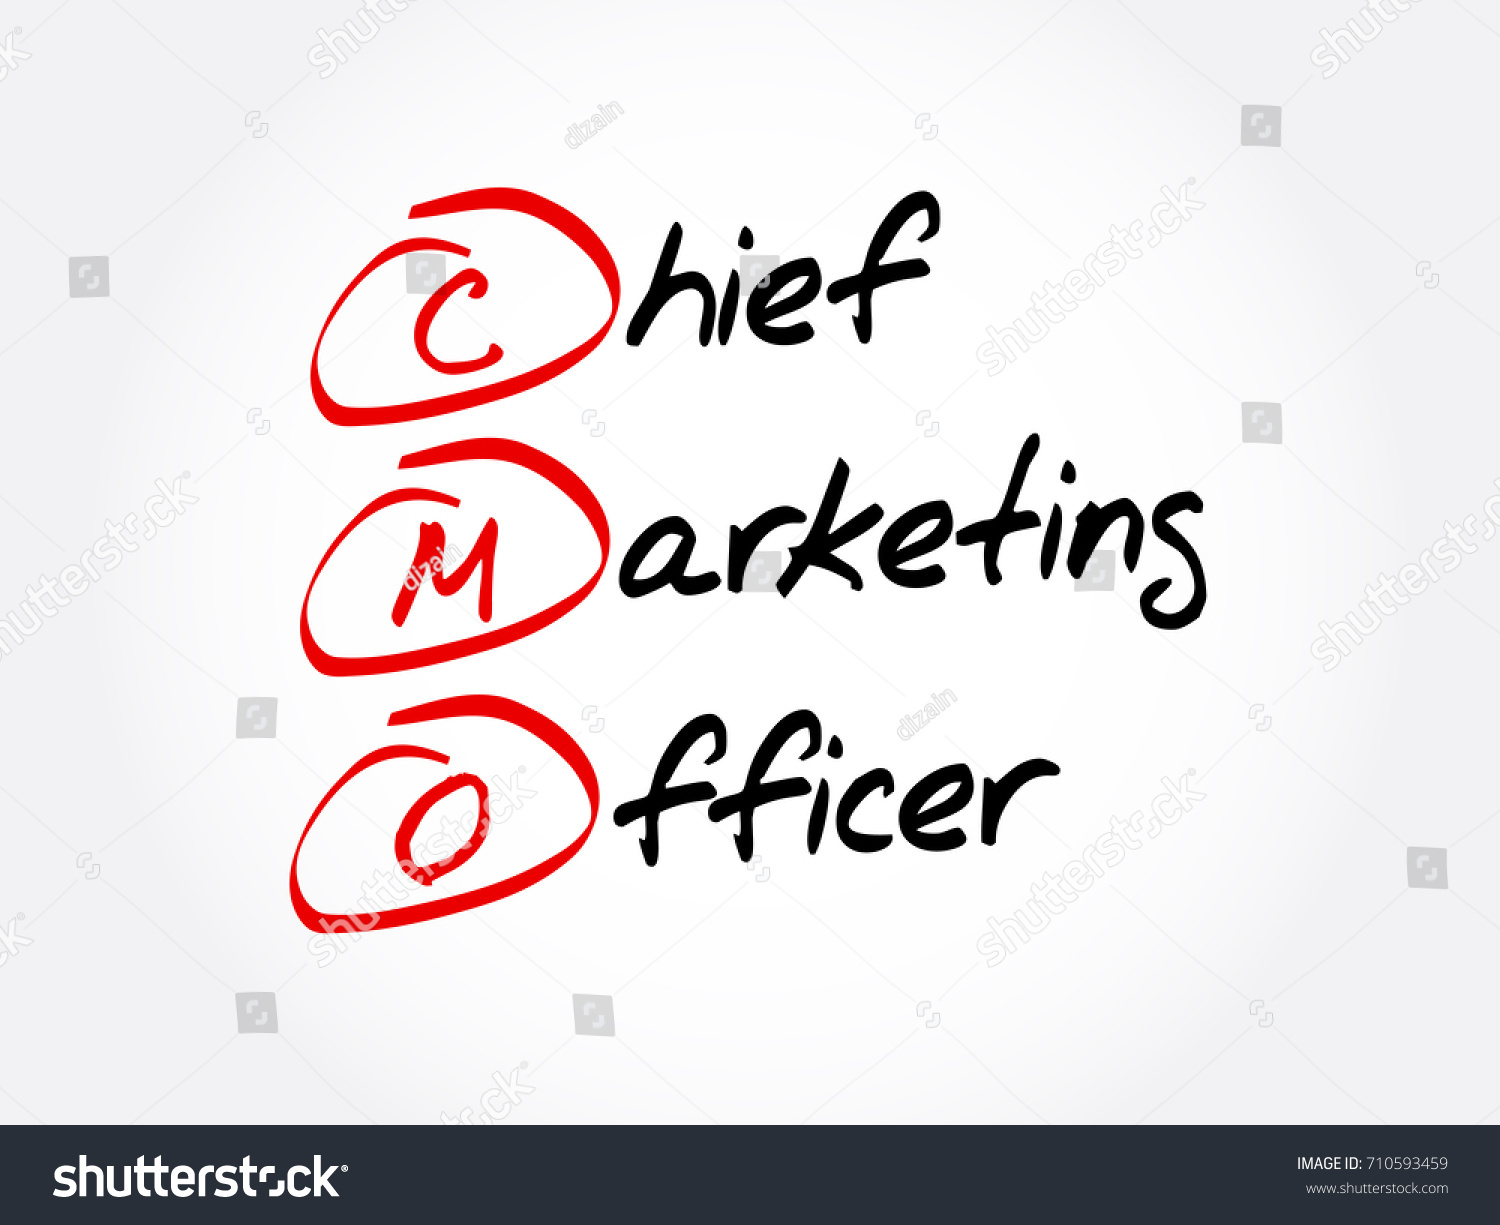 CMO   Chief Marketing Officer, Acronym Business Concept Background